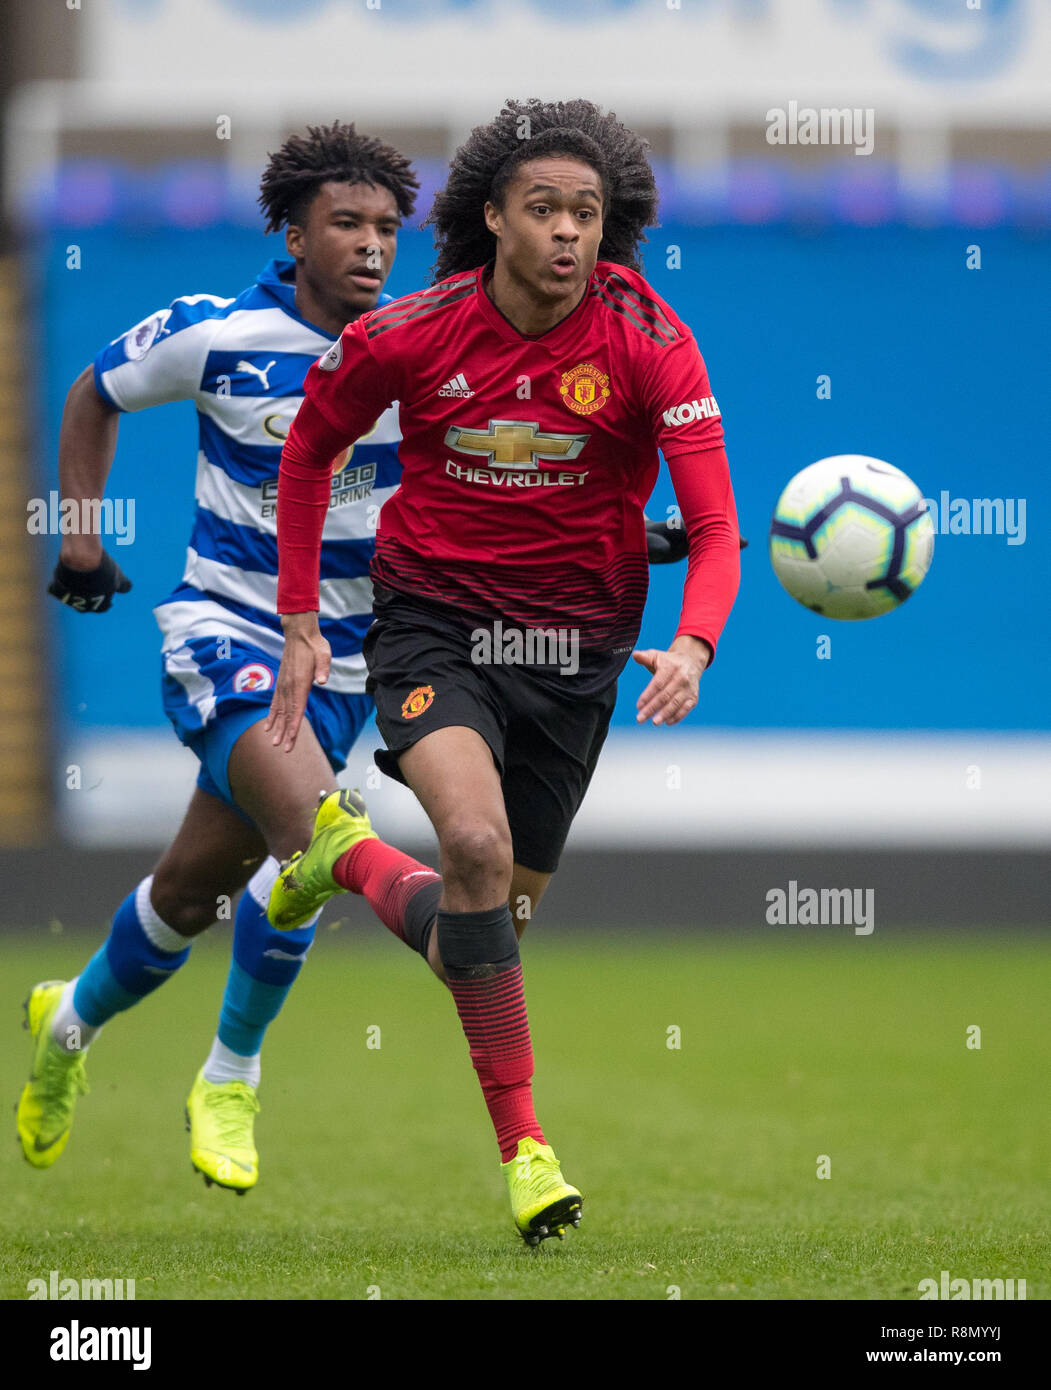 Reading Uk 16th Dec 2018 Tahith Chong Of Man Utd U23 Moves From Omar Richards Of Reading U23 During The Premier League 2 Division 2 Match Between Reading U23 And Manchester United